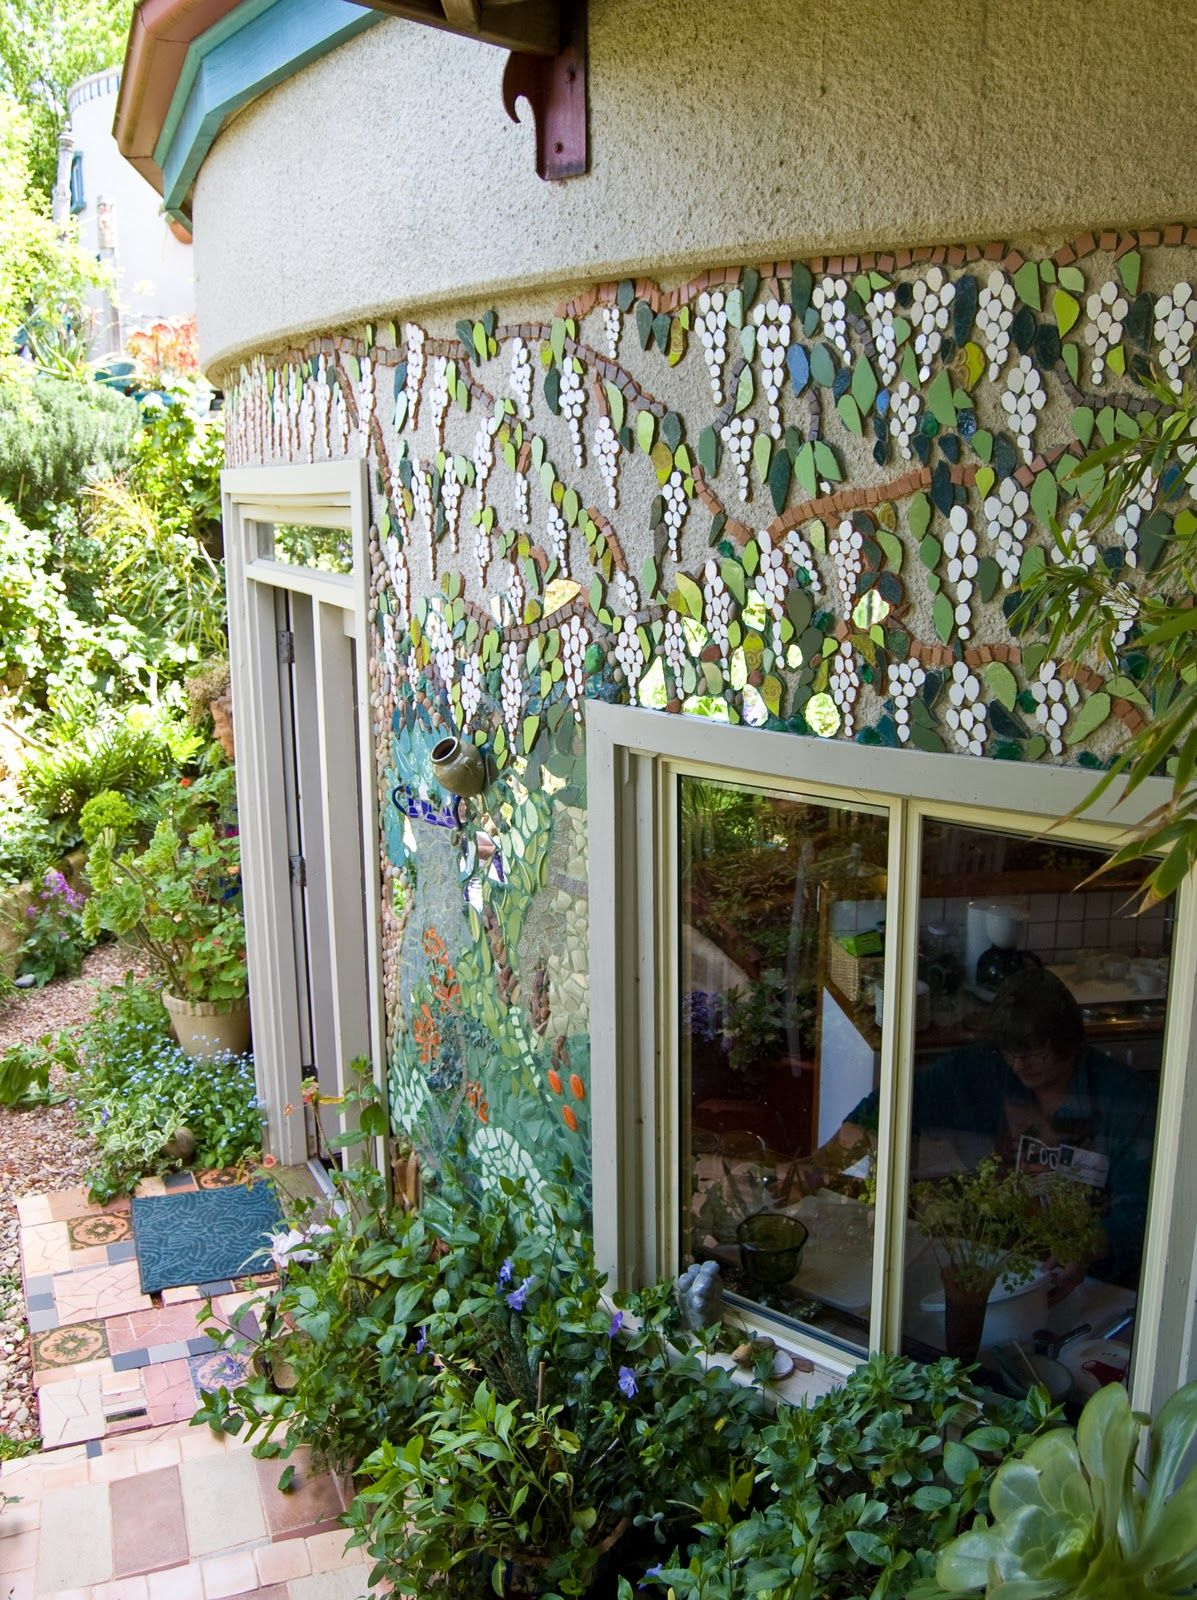 Ungrouted Wall Tickletank Irene Stone Pearce South Australia Mosaic Wall Mosaic Murals Mosaic Garden